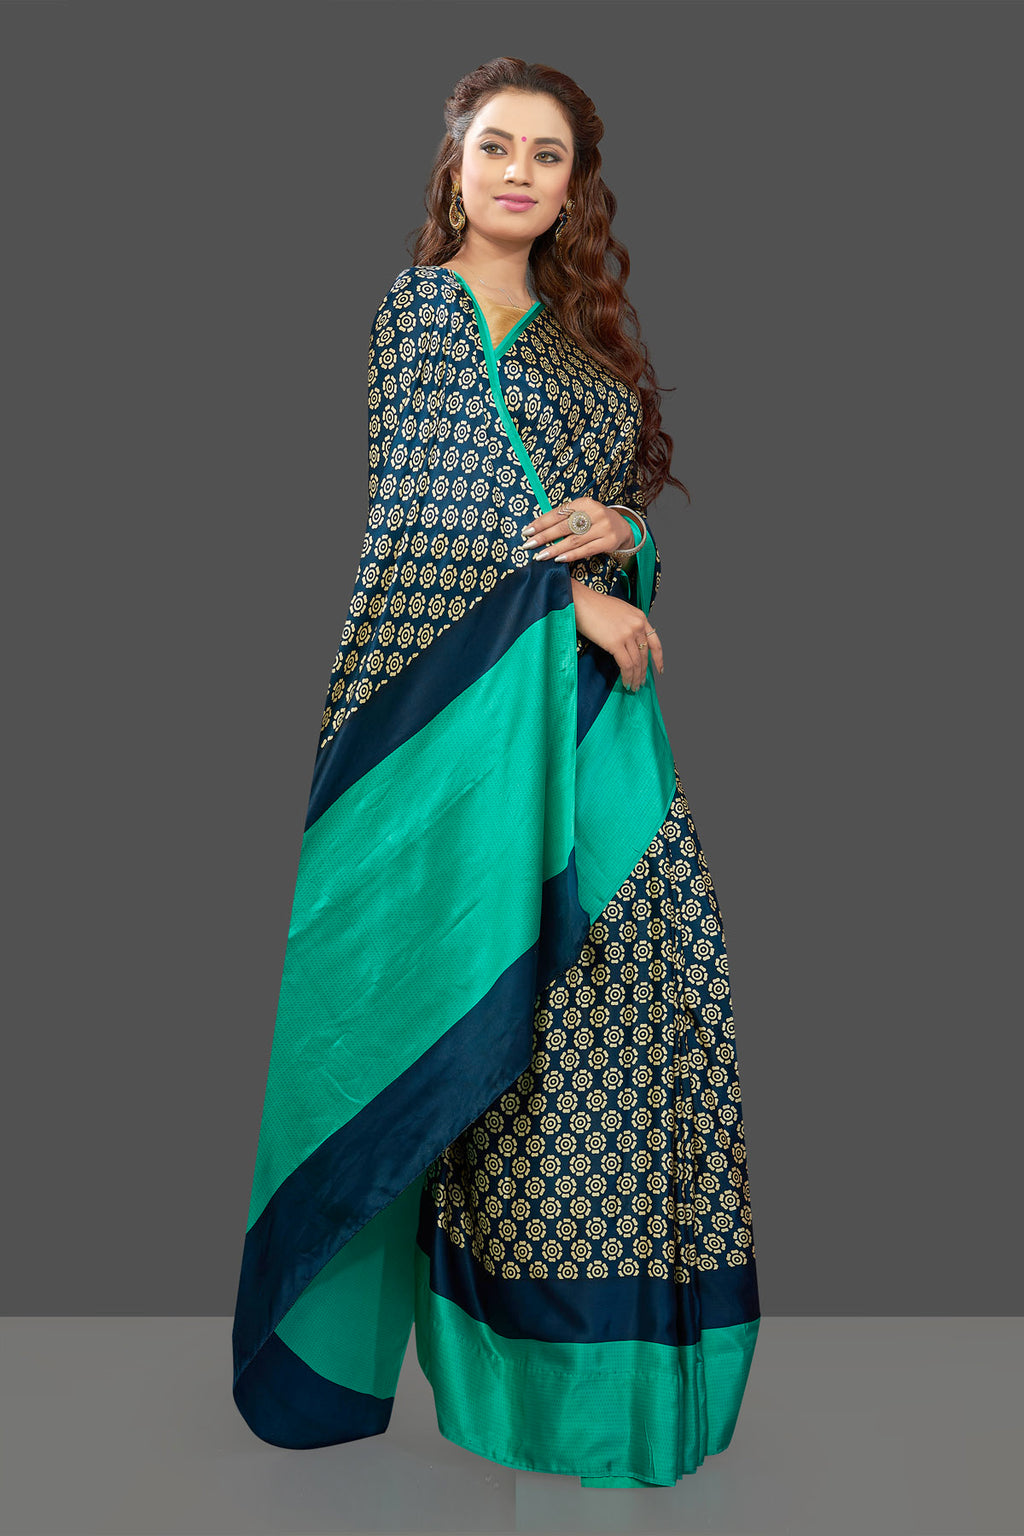 Buy elegant dark blue crepe silk sari online in USA with solid green border. Elevate your Indian style on special occasions in beautiful designer sarees, crepe silk sarees, georgette saris, printed sarees from Pure Elegance Indian clothing store in USA.-full view